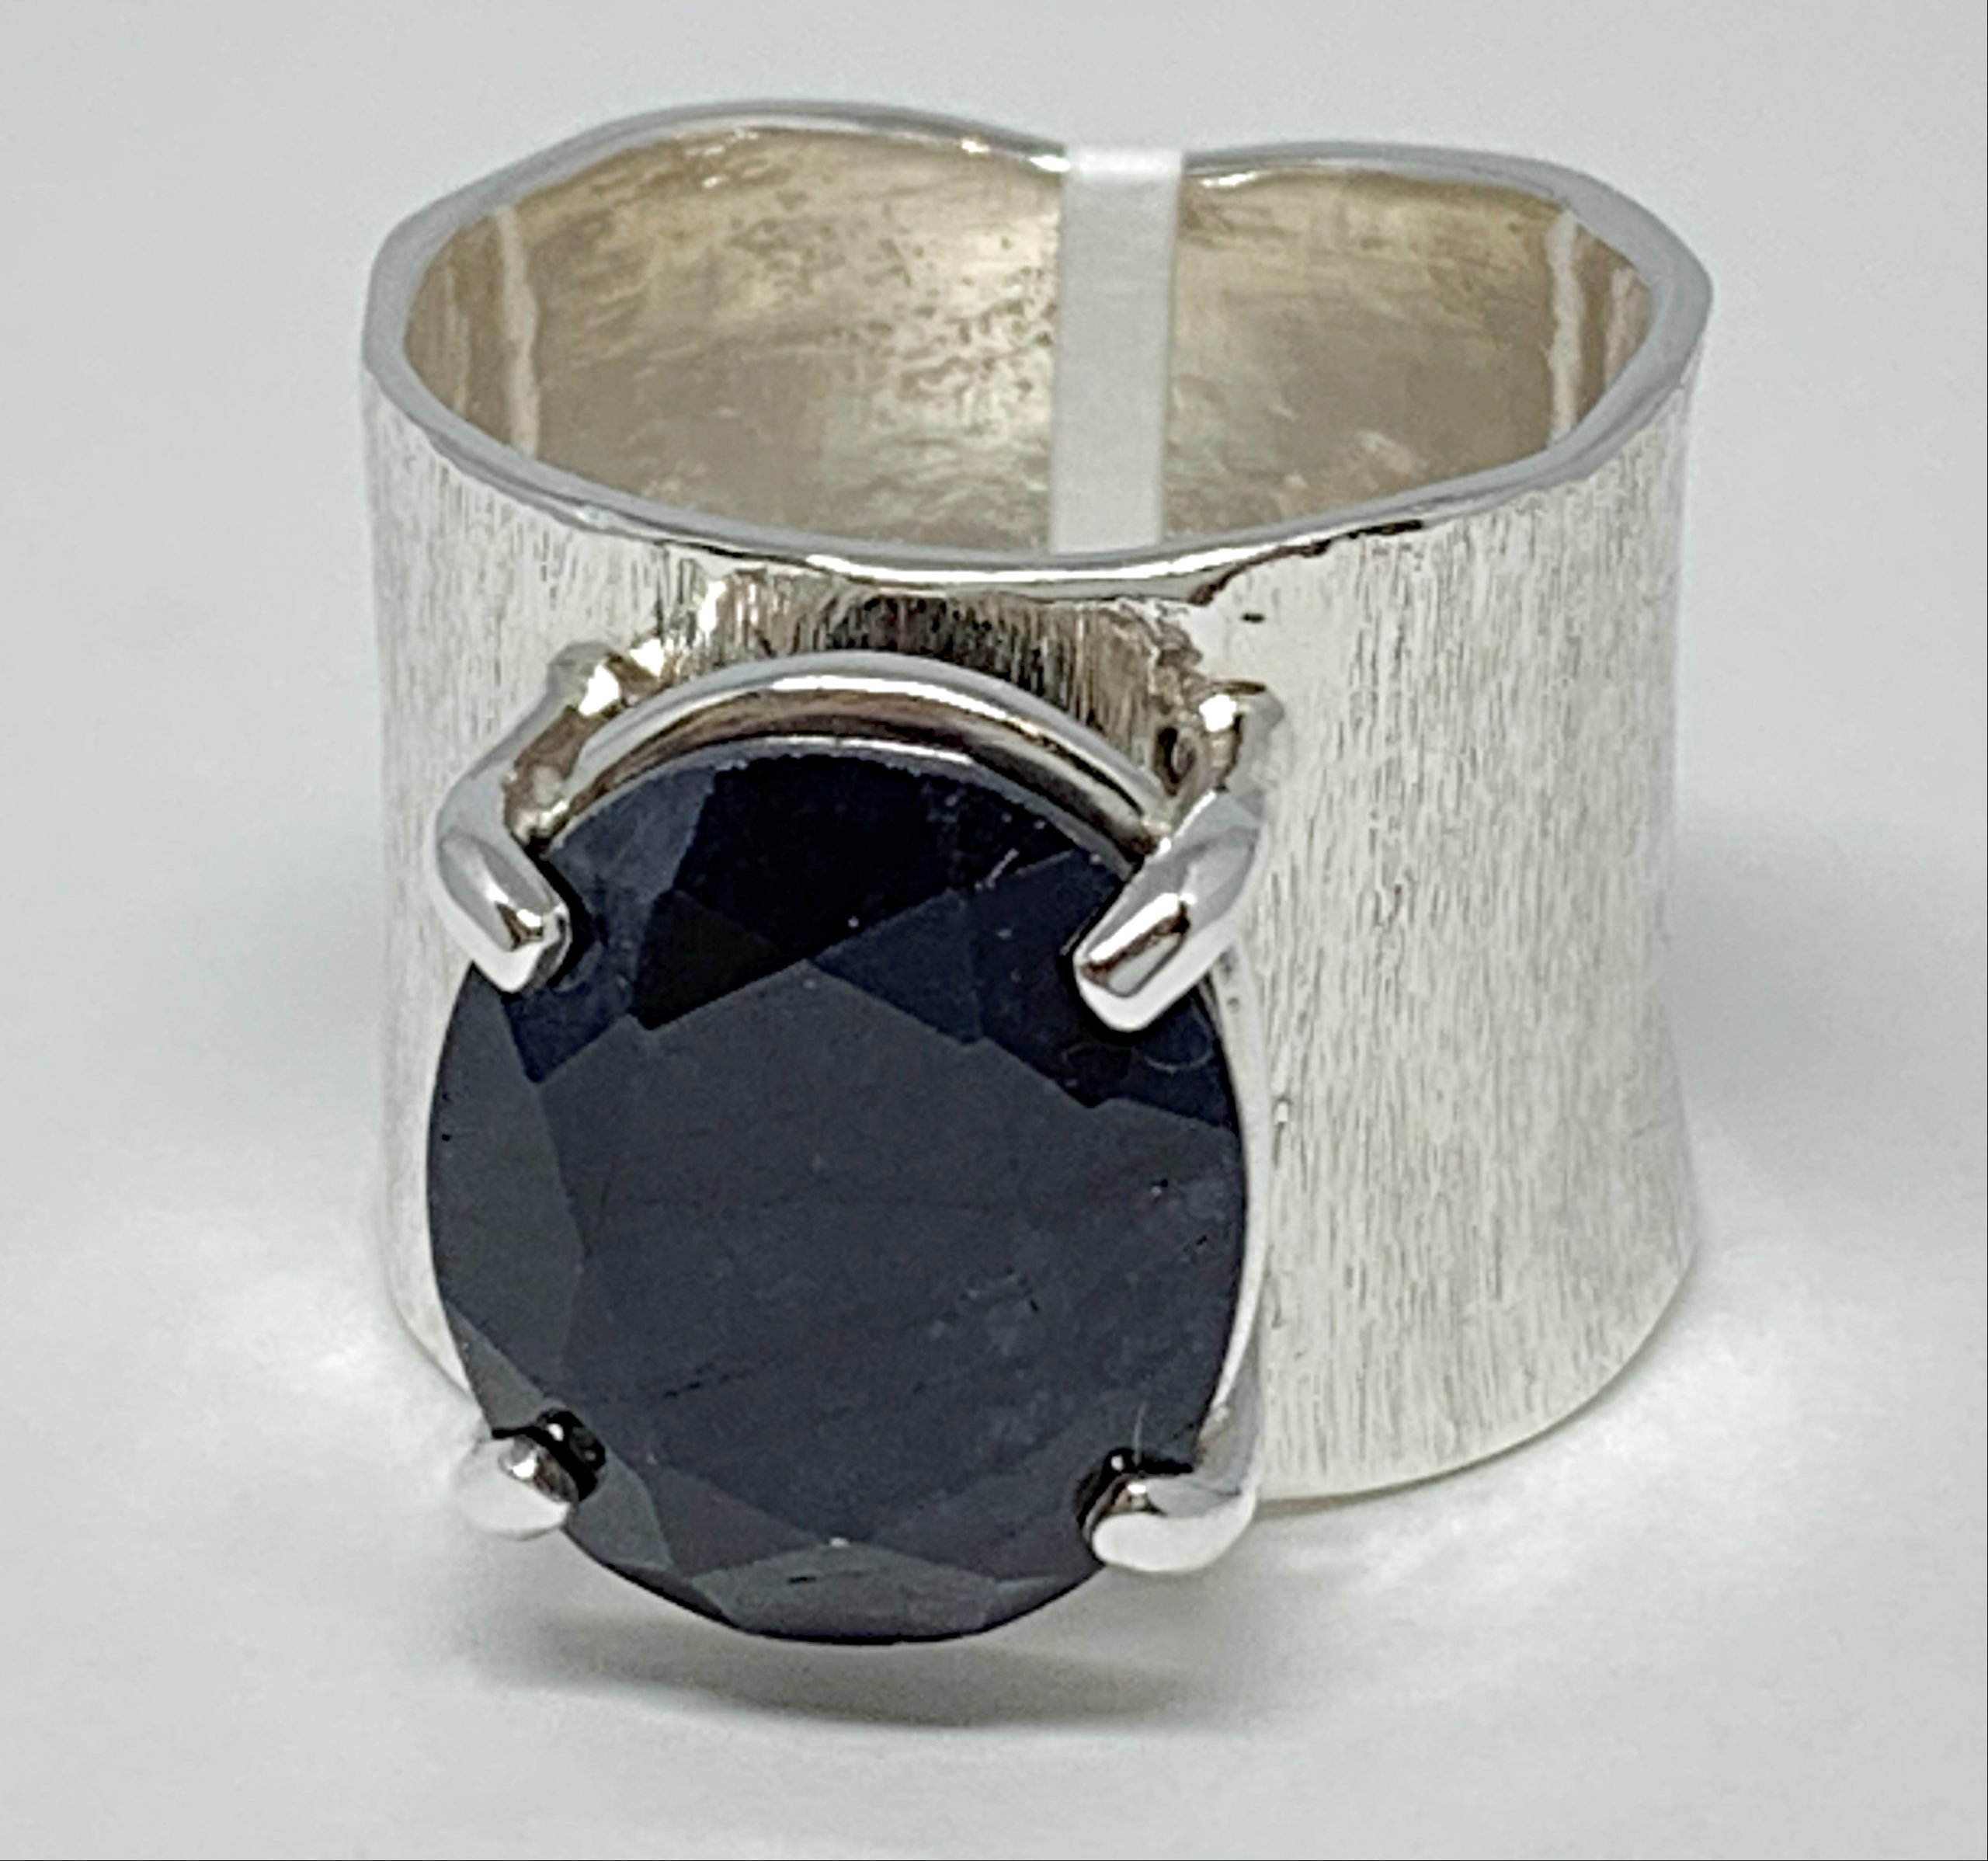 Handmade sterling silver and sapphire ring by A&R Jewellery | Effusion Art Gallery + Cast Glass Studio, Invermere BC